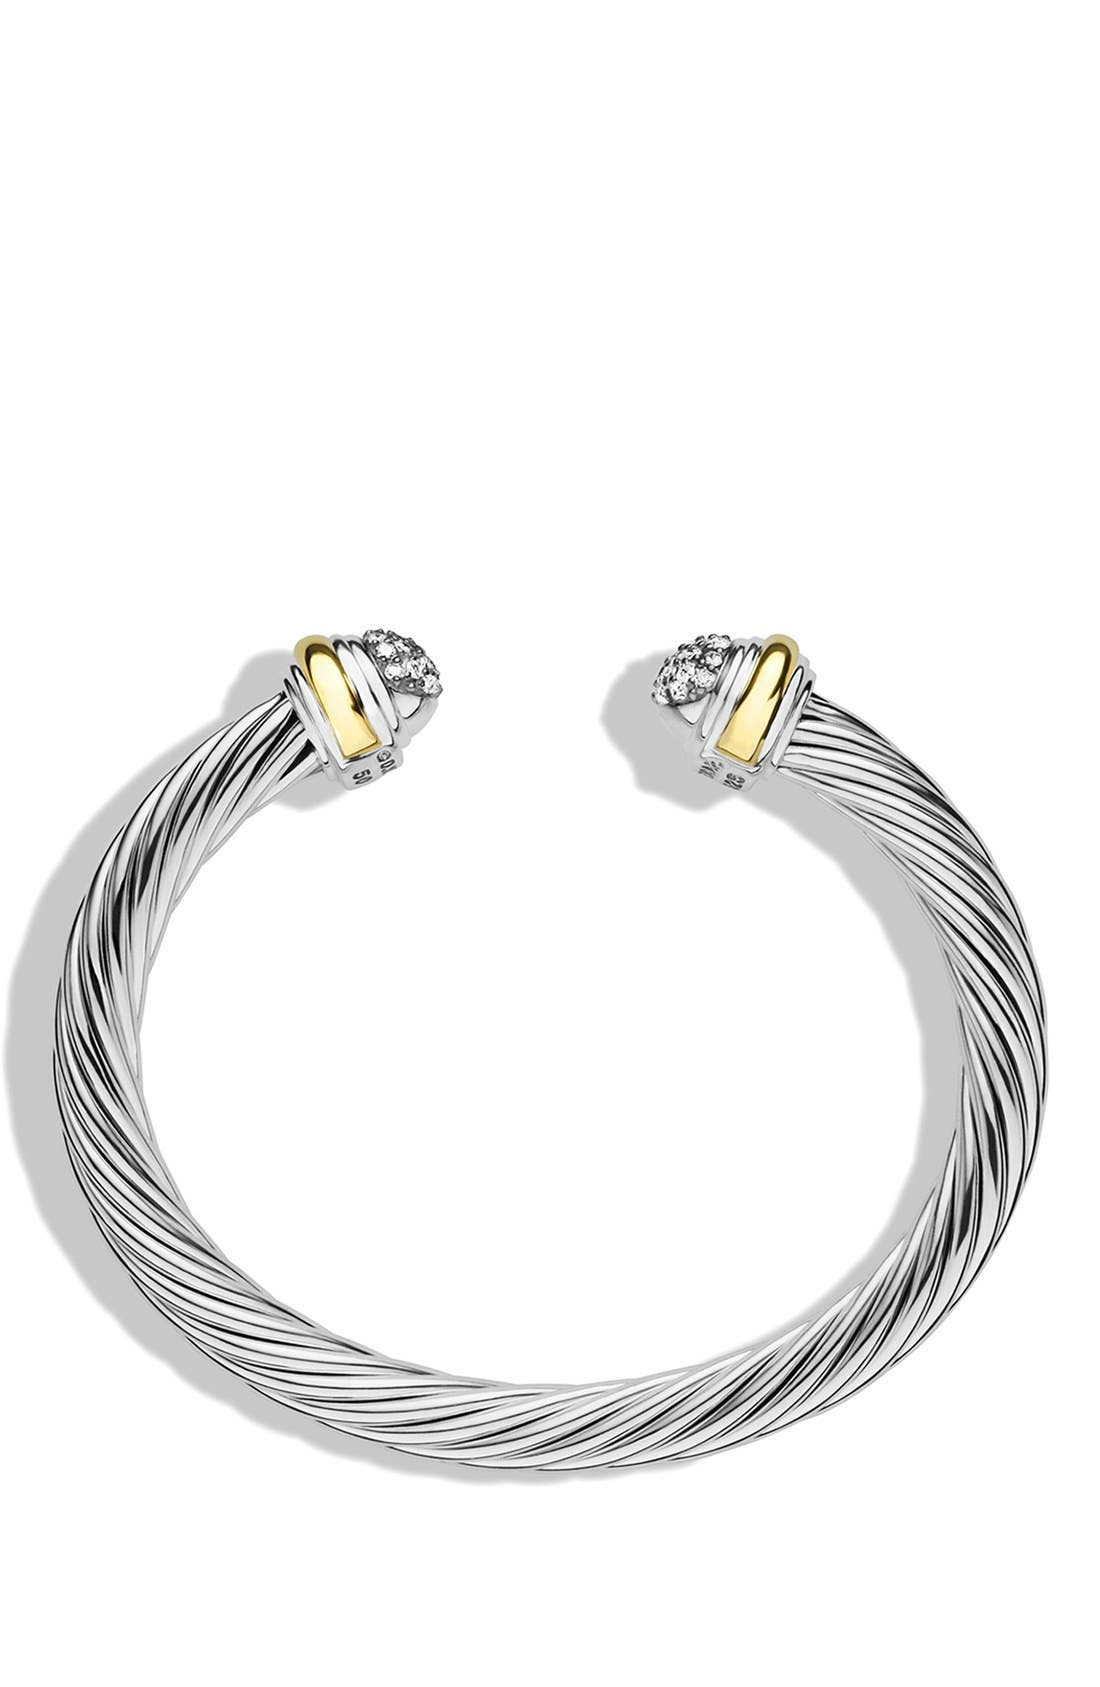 Cable Classics Bracelet with Diamonds and 18K Gold, 7mm,                             Alternate thumbnail 3, color,                             DIAMOND